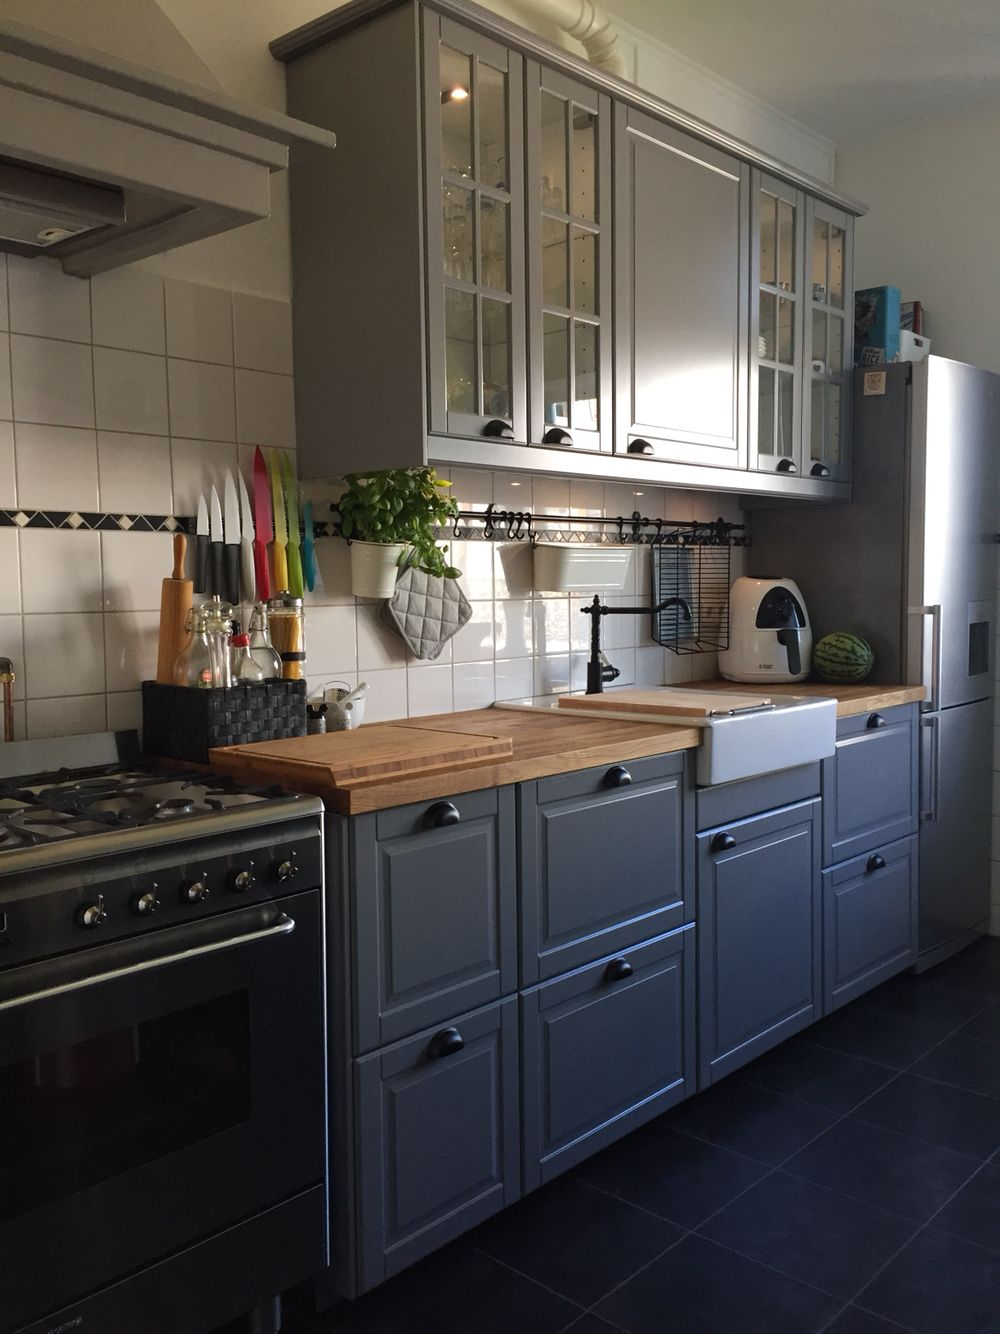 New Kitchen Ikea Bodbyn Grey Ikea Bodbyn Pinterest